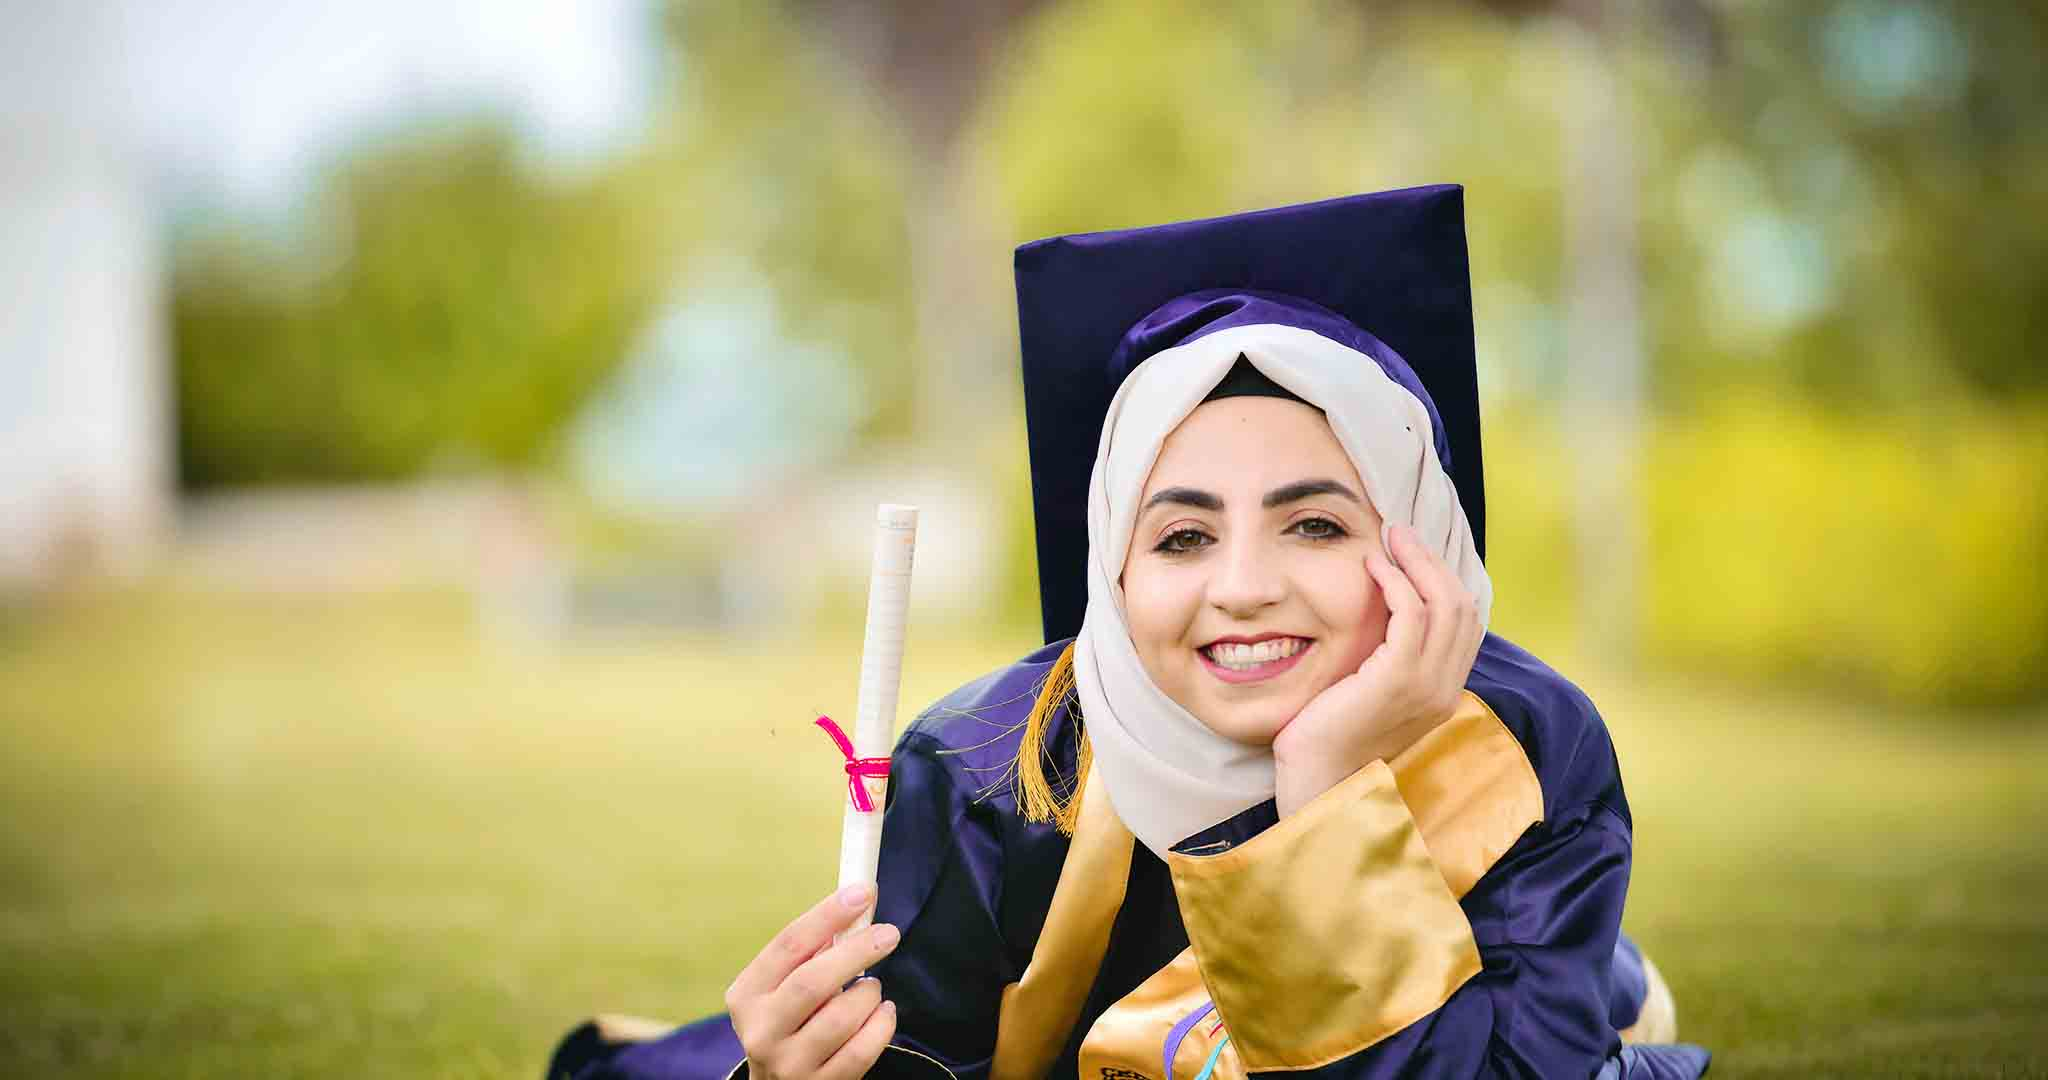 academic degree academic dress accomplishment student college stock photography 002